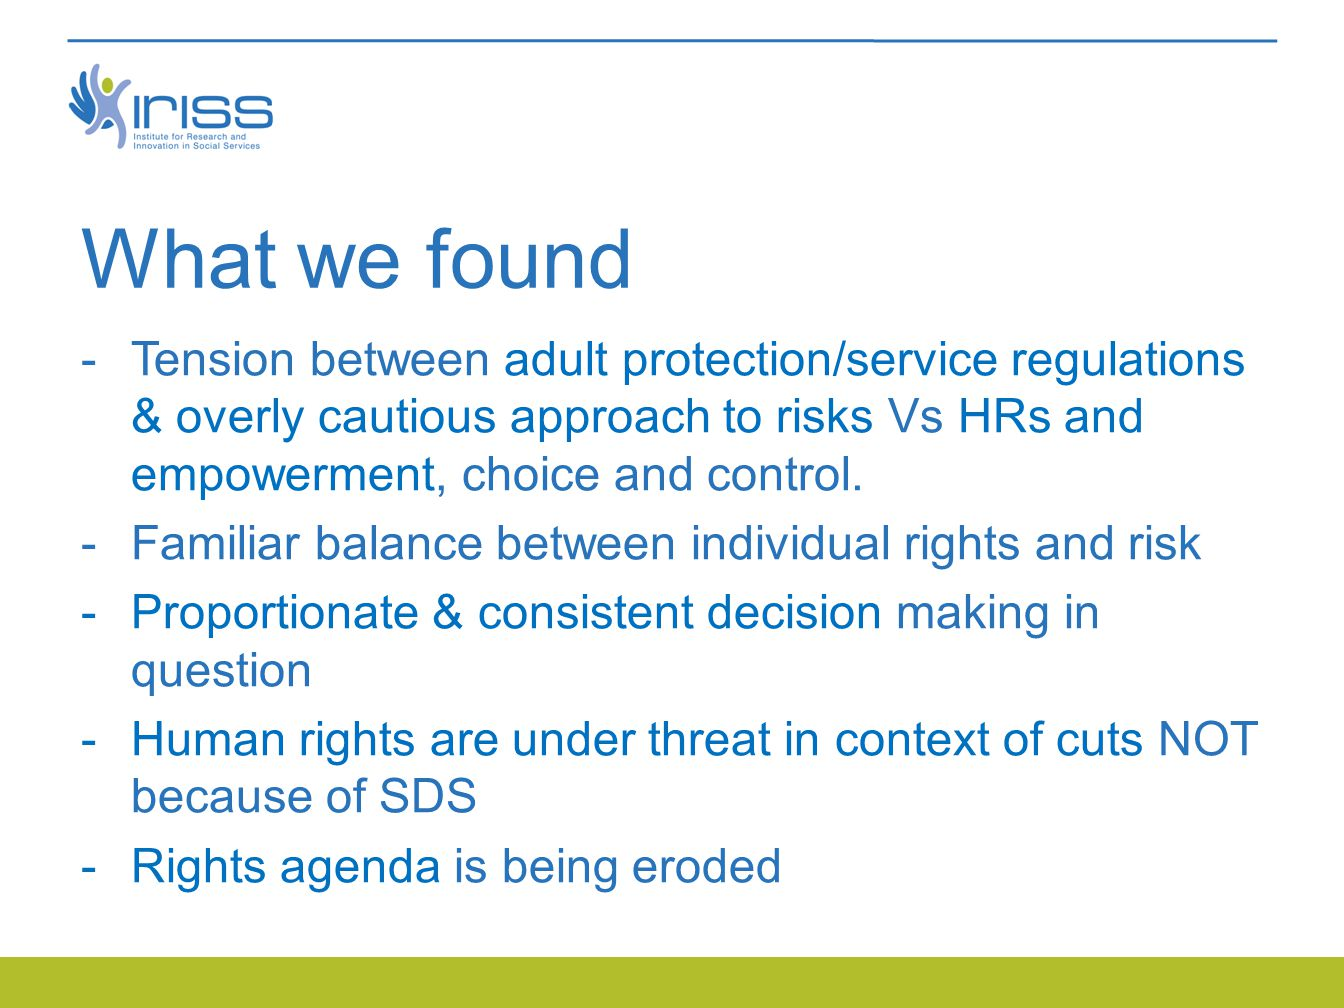 What we found -Tension between adult protection/service regulations & overly cautious approach to risks Vs HRs and empowerment, choice and control.